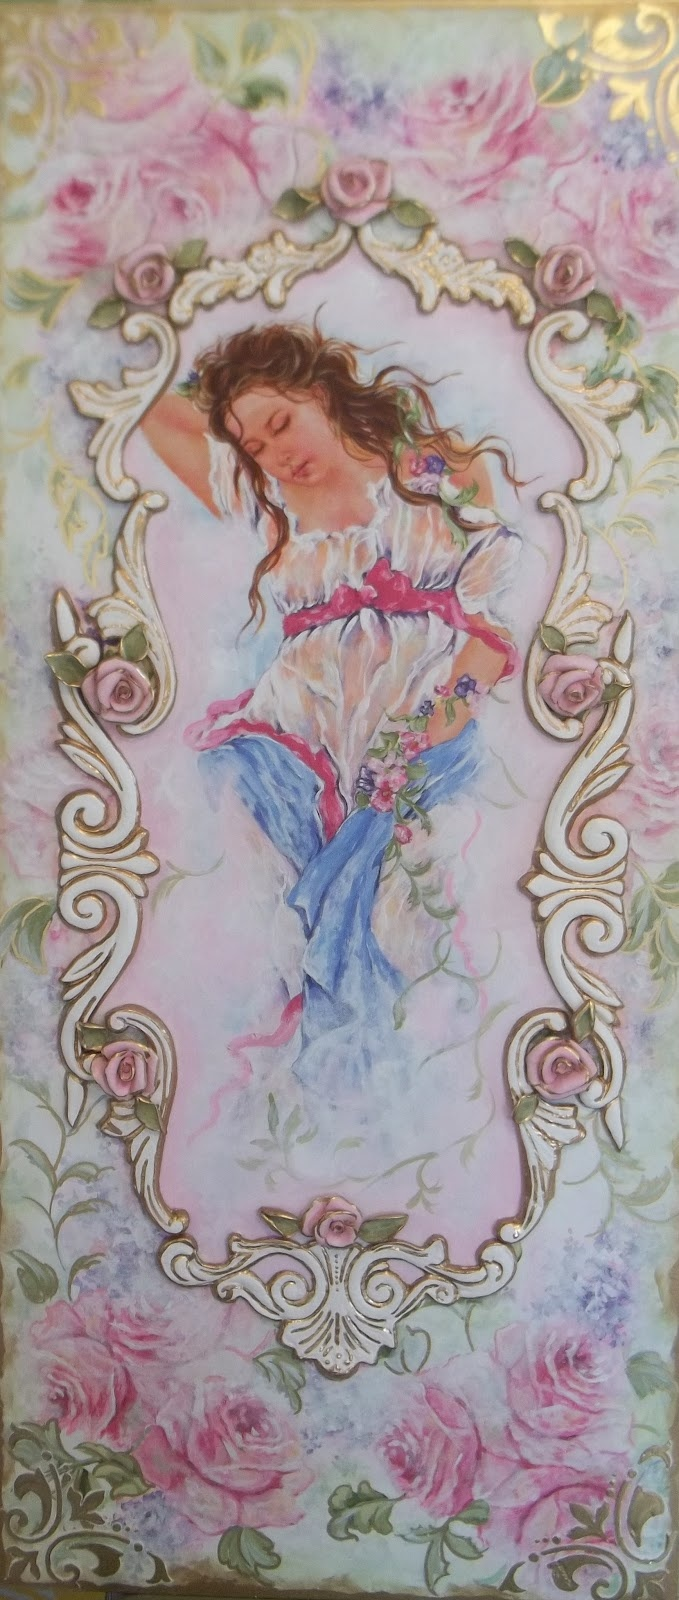 The artist uses pastel colors to create  a soft and romantic painting. There are also flowers and tapestry designs.